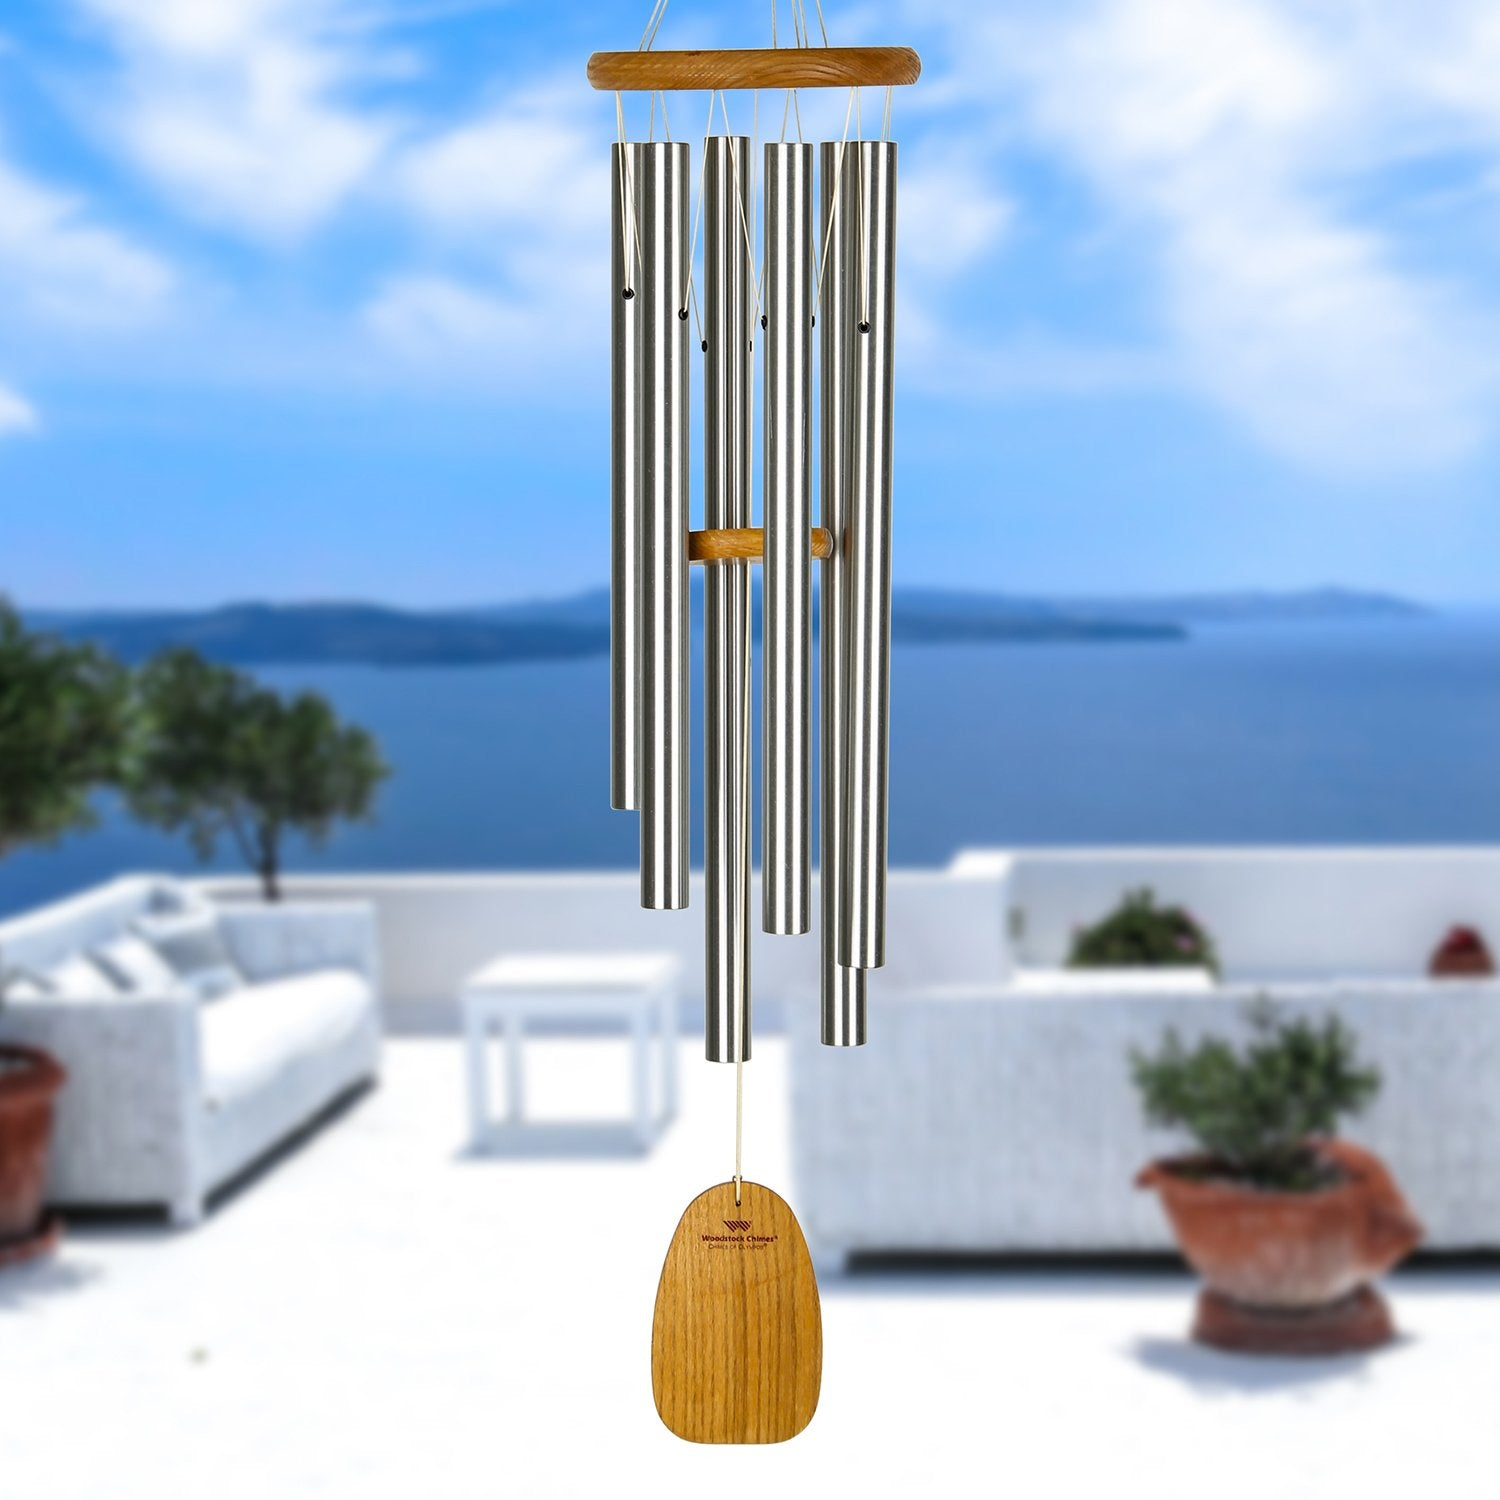 Chimes of Olympos lifestyle image